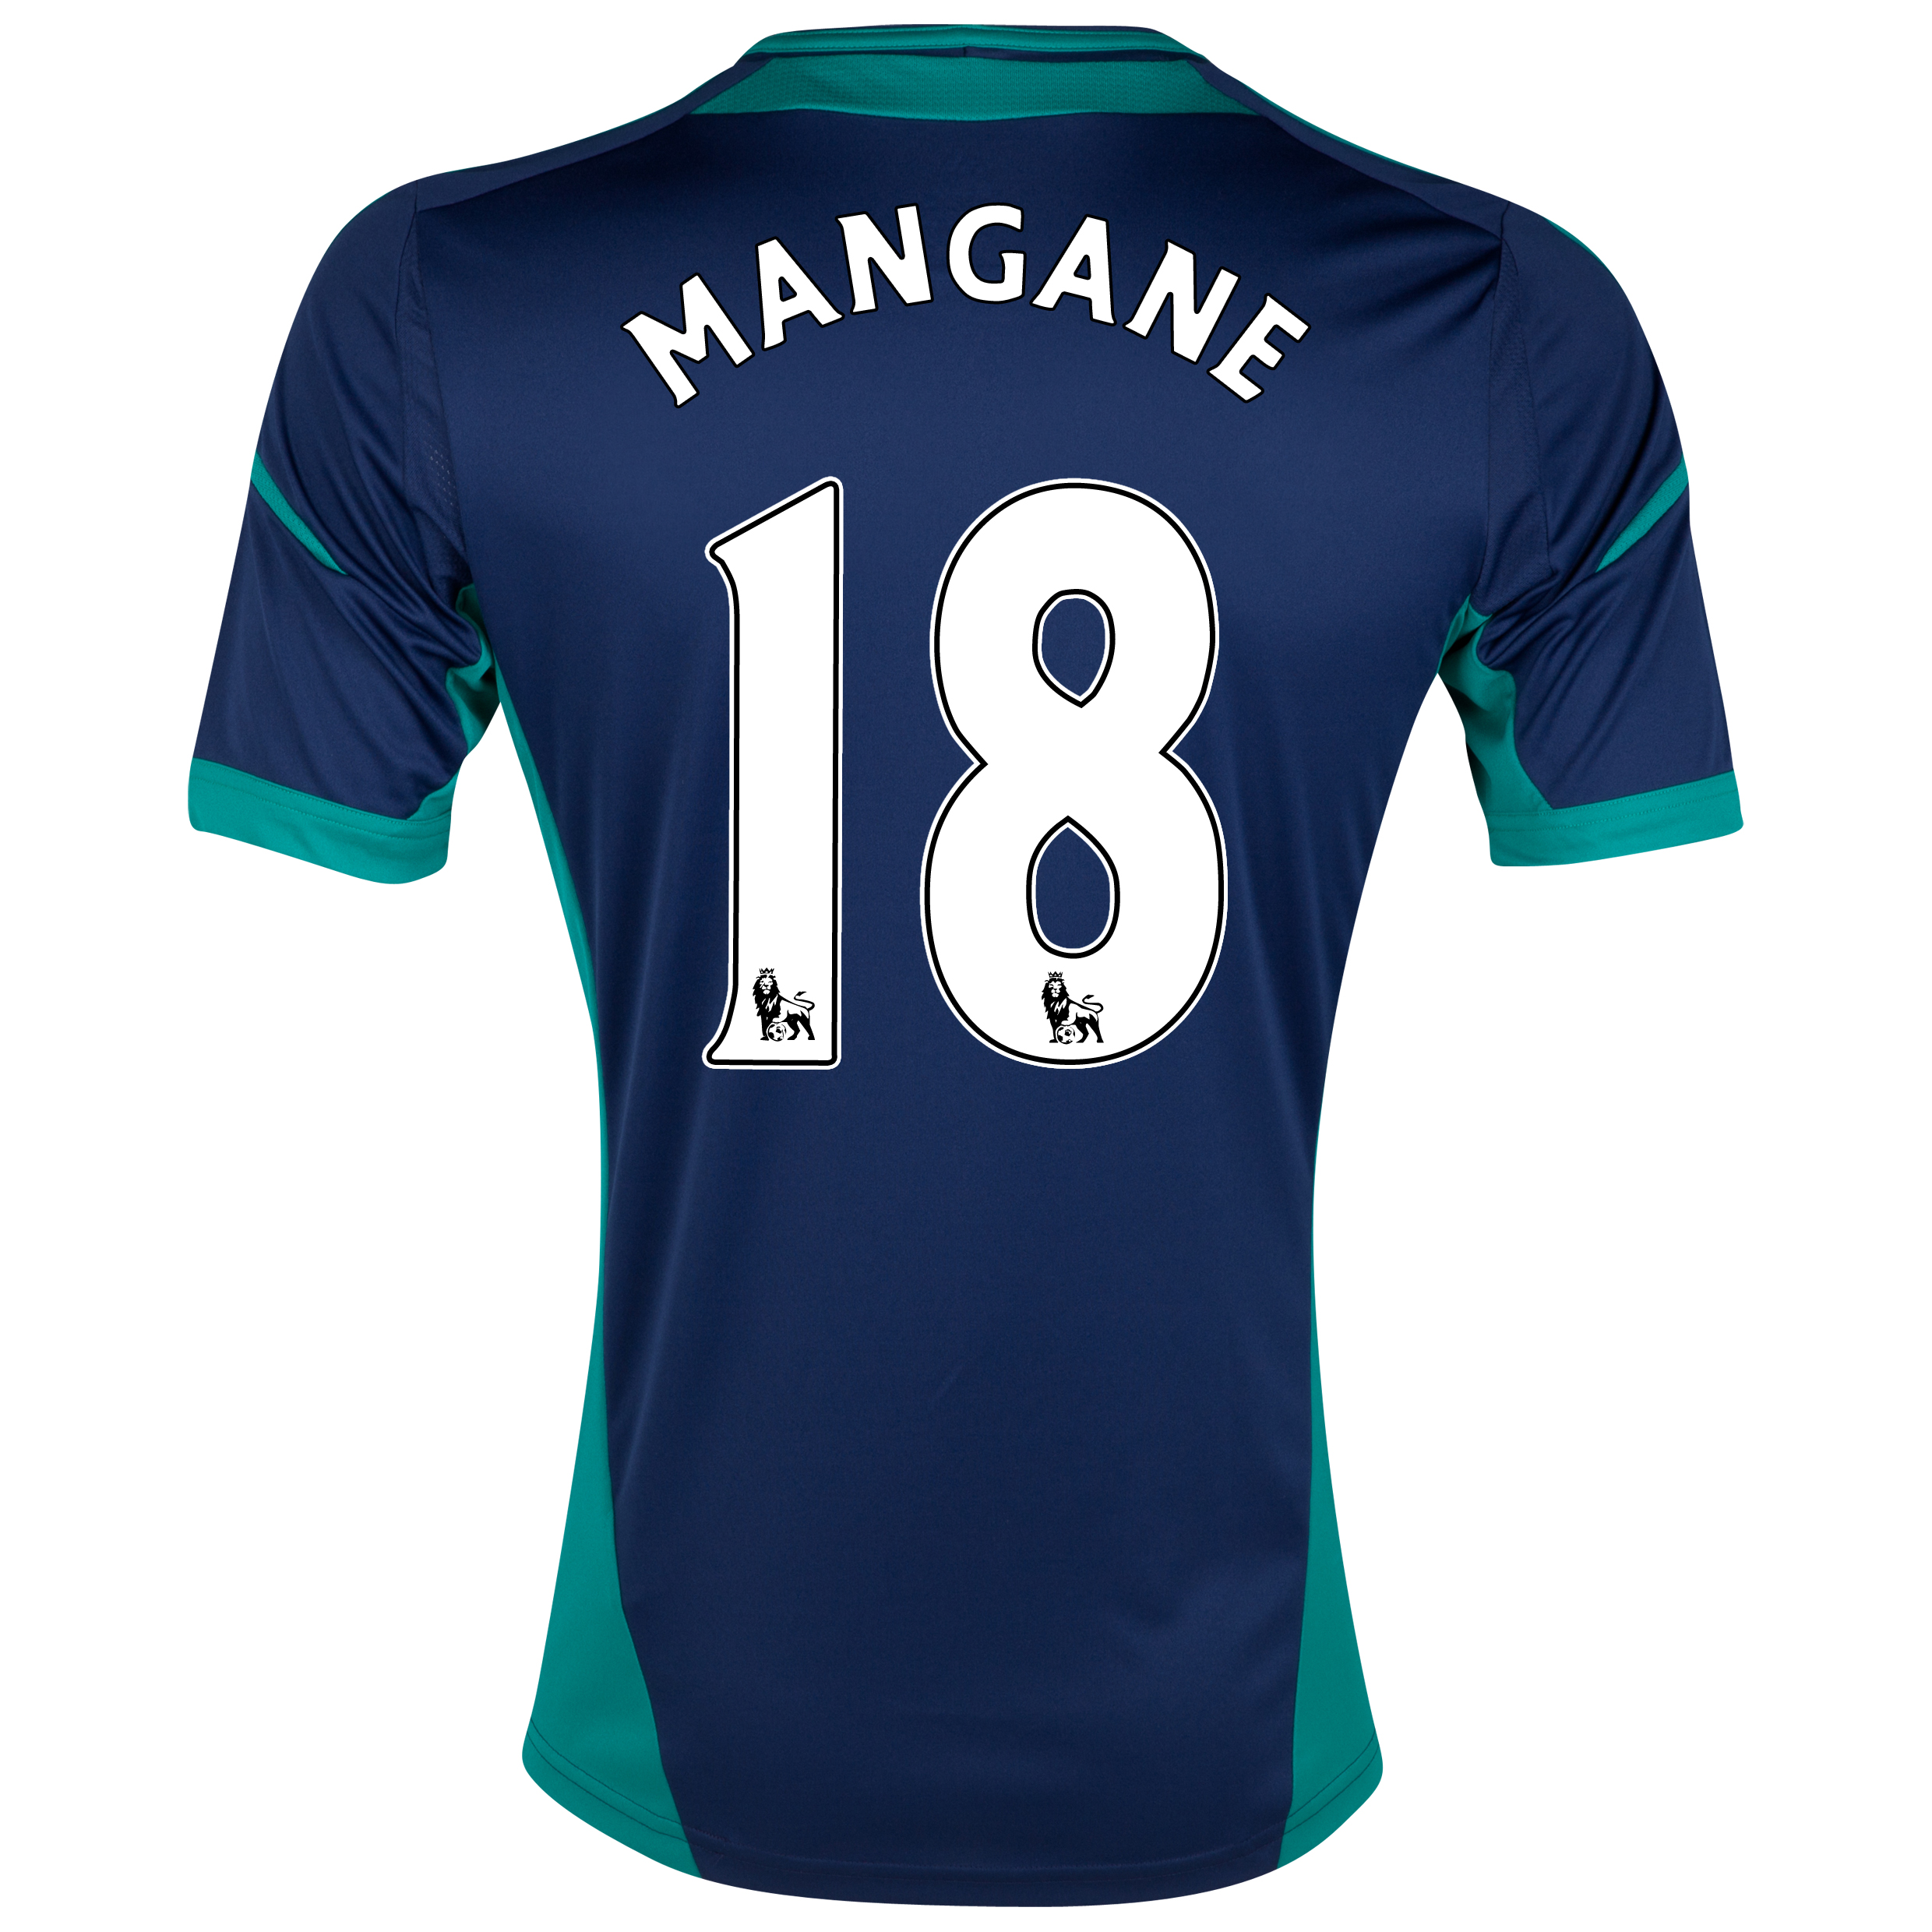 Sunderland Away Shirt 2012/13 - Junior with Mangane 18 printing